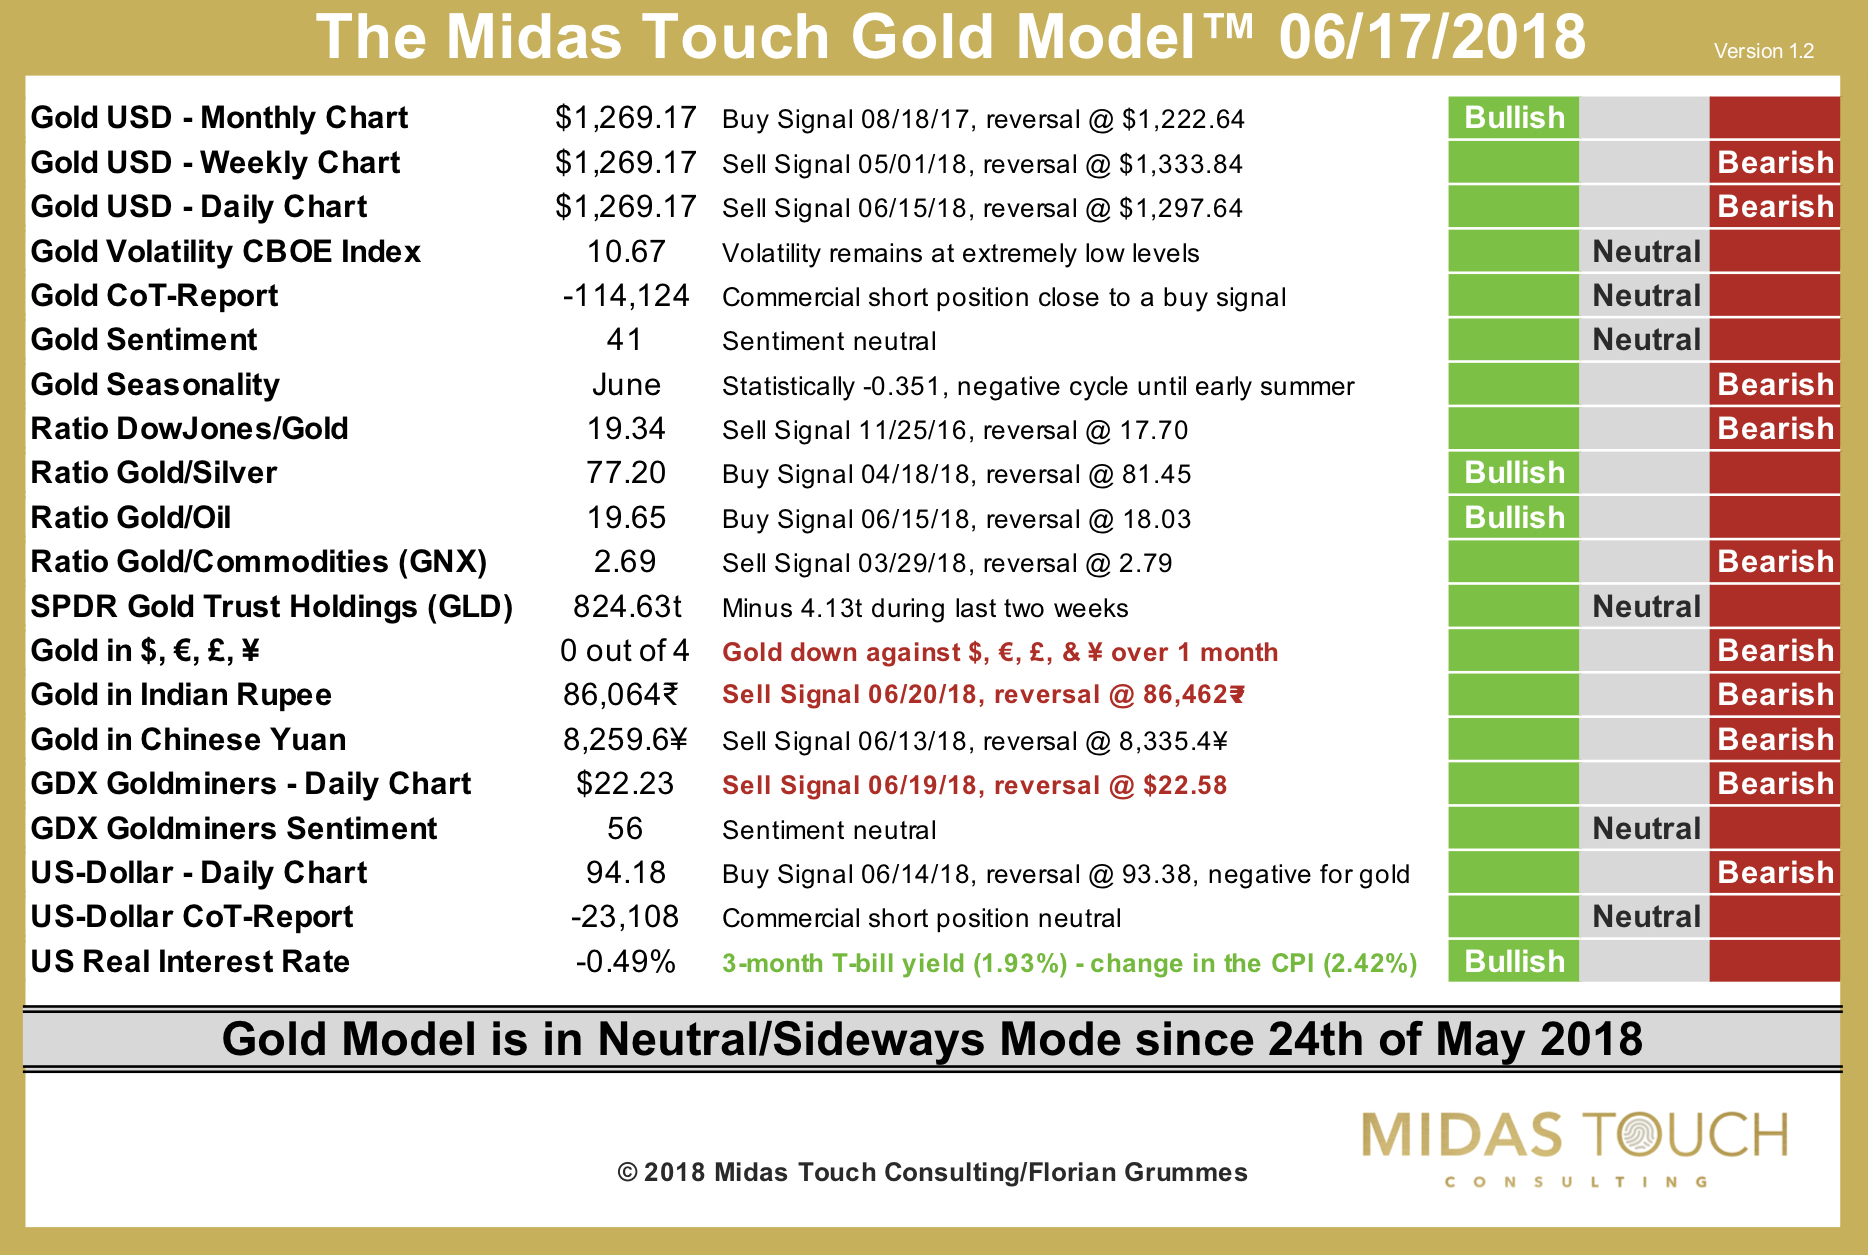 The Midas Touch Gold Model™ as of June 24th, 2018